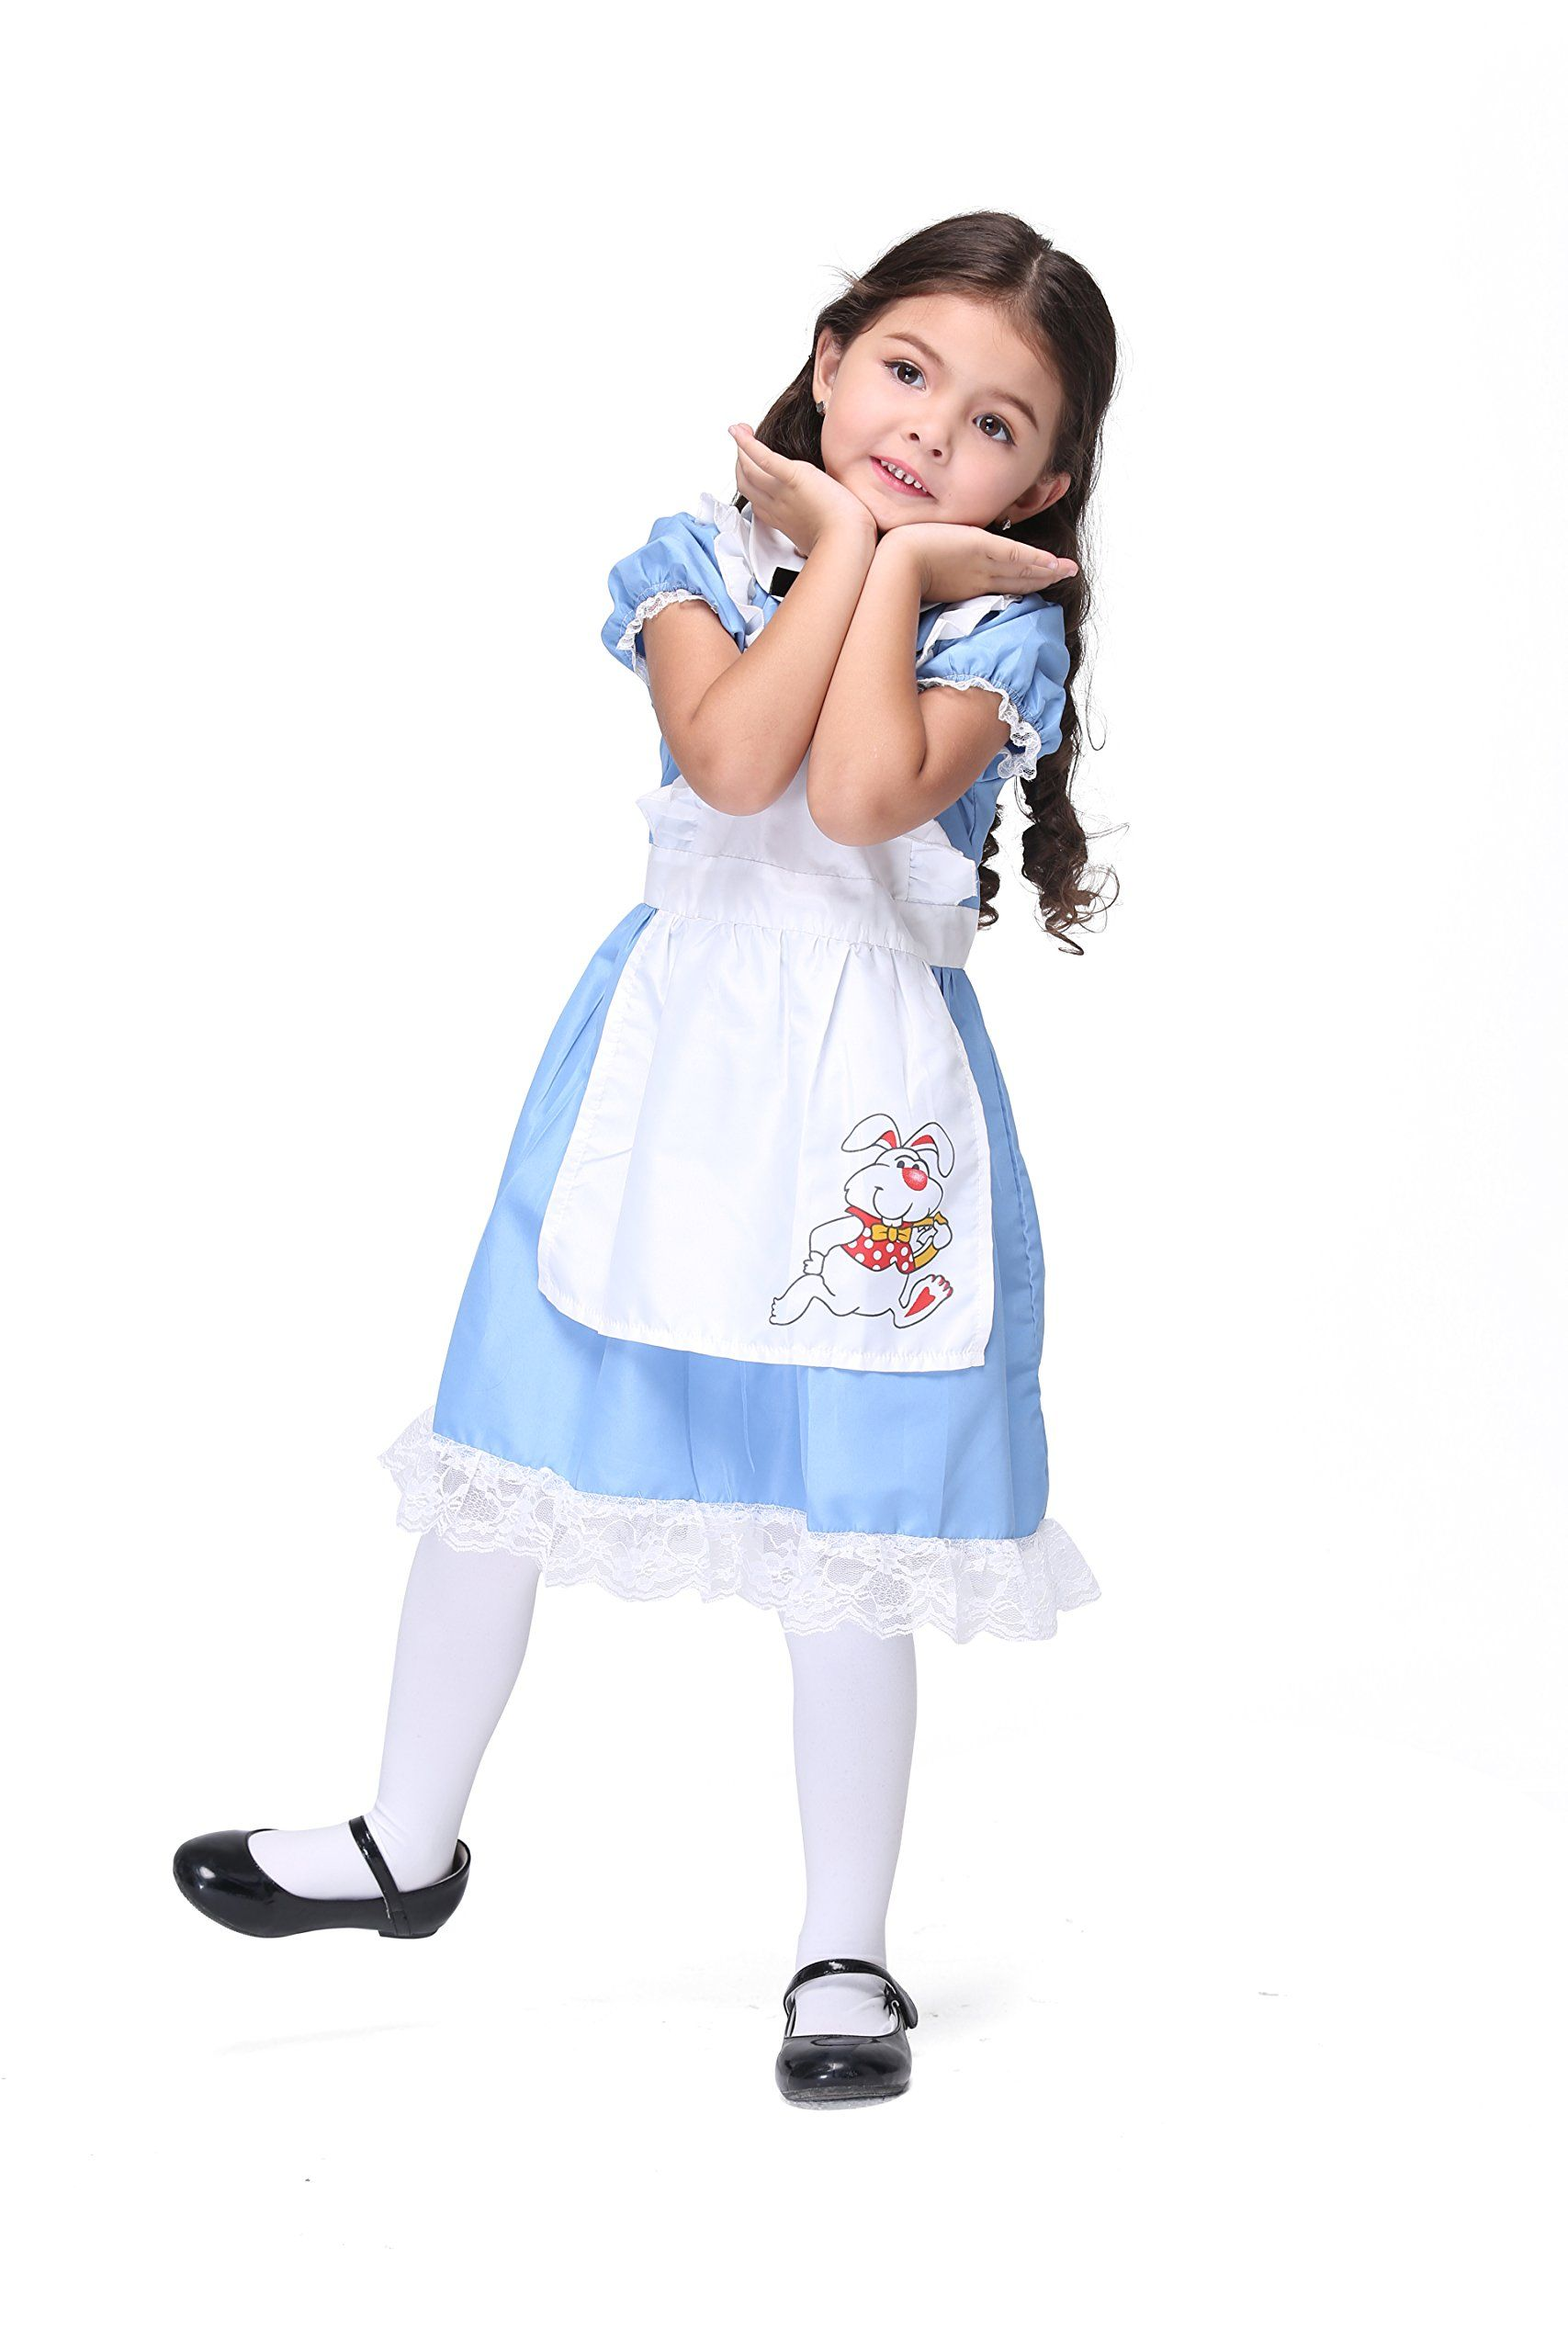 cccba7ec391d Vivihoo EK027 Lil Alice in Wonderland Toddlers Costume Cosplay Dress For Little  Girl M * Check out this great product.(It is Amazon affiliate link) # ...